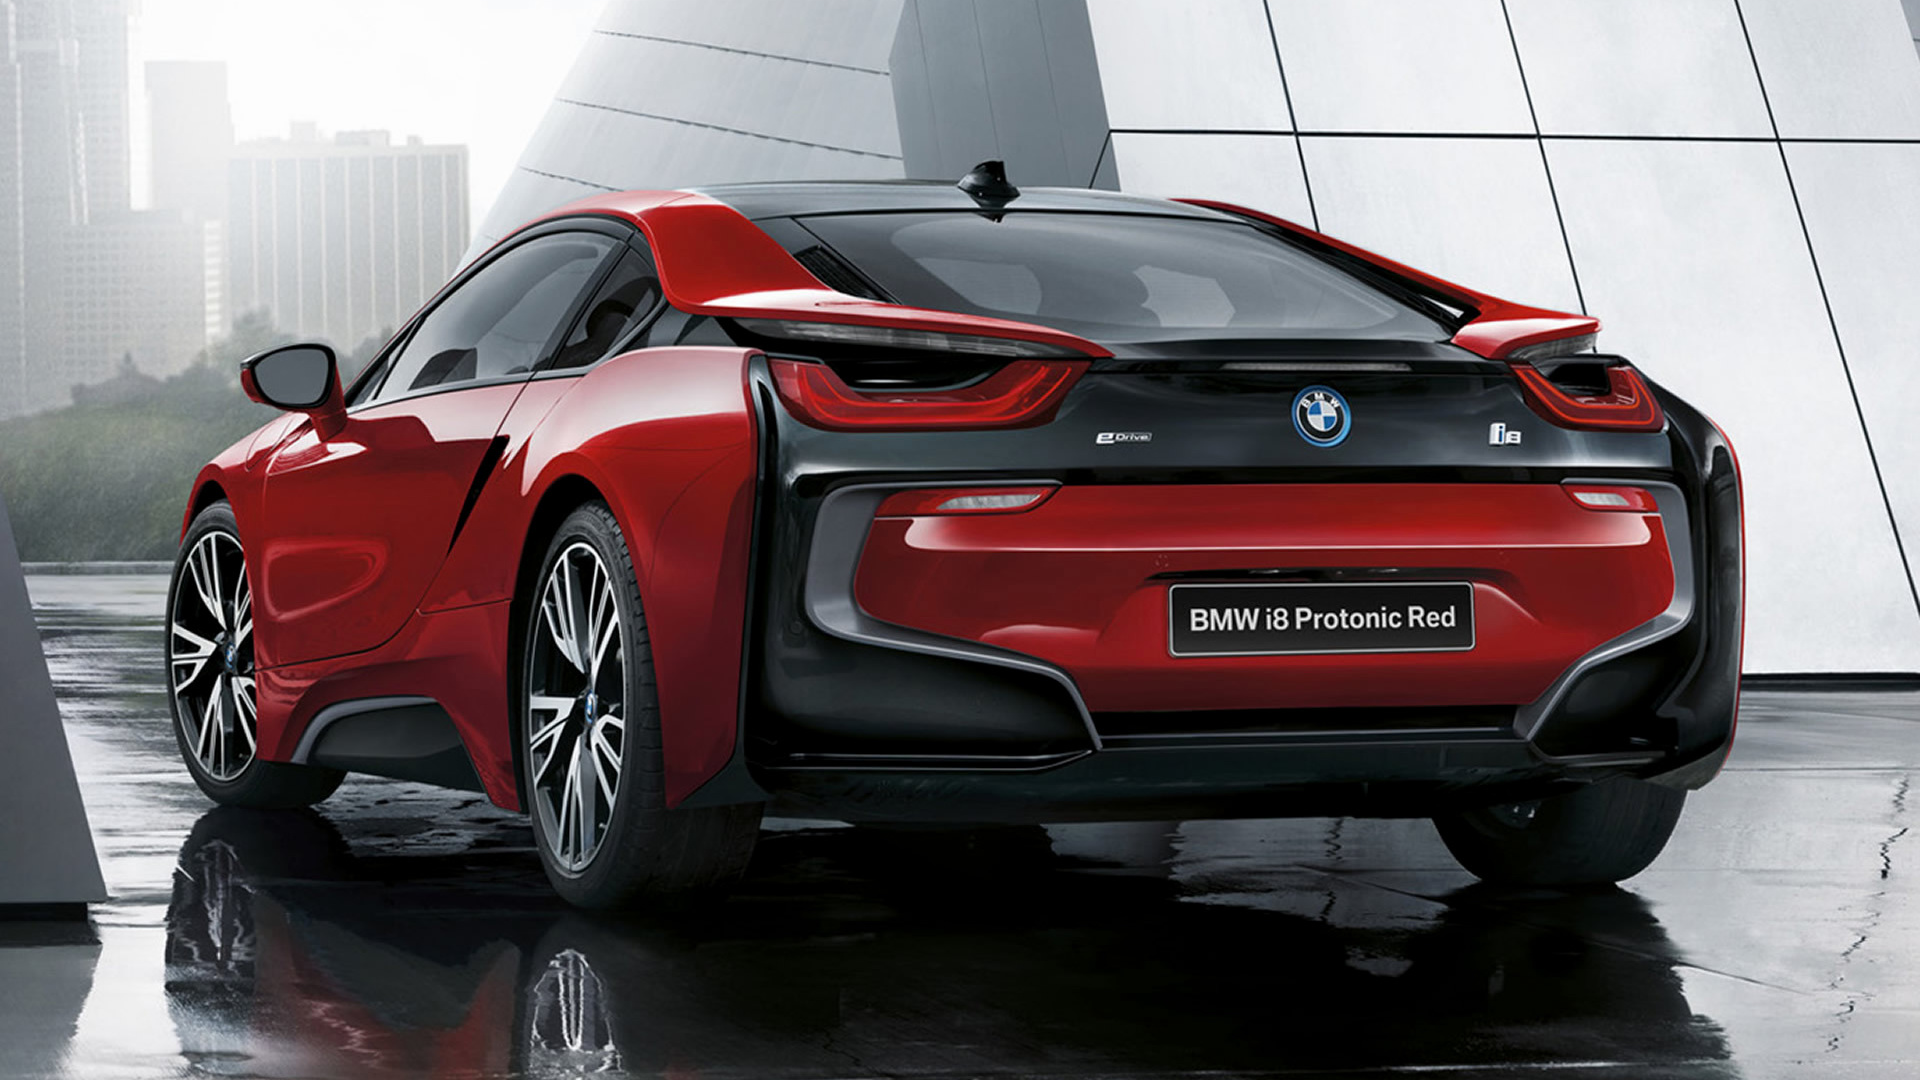 2016 Bmw I8 Protonic Red Edition Wallpapers And Hd